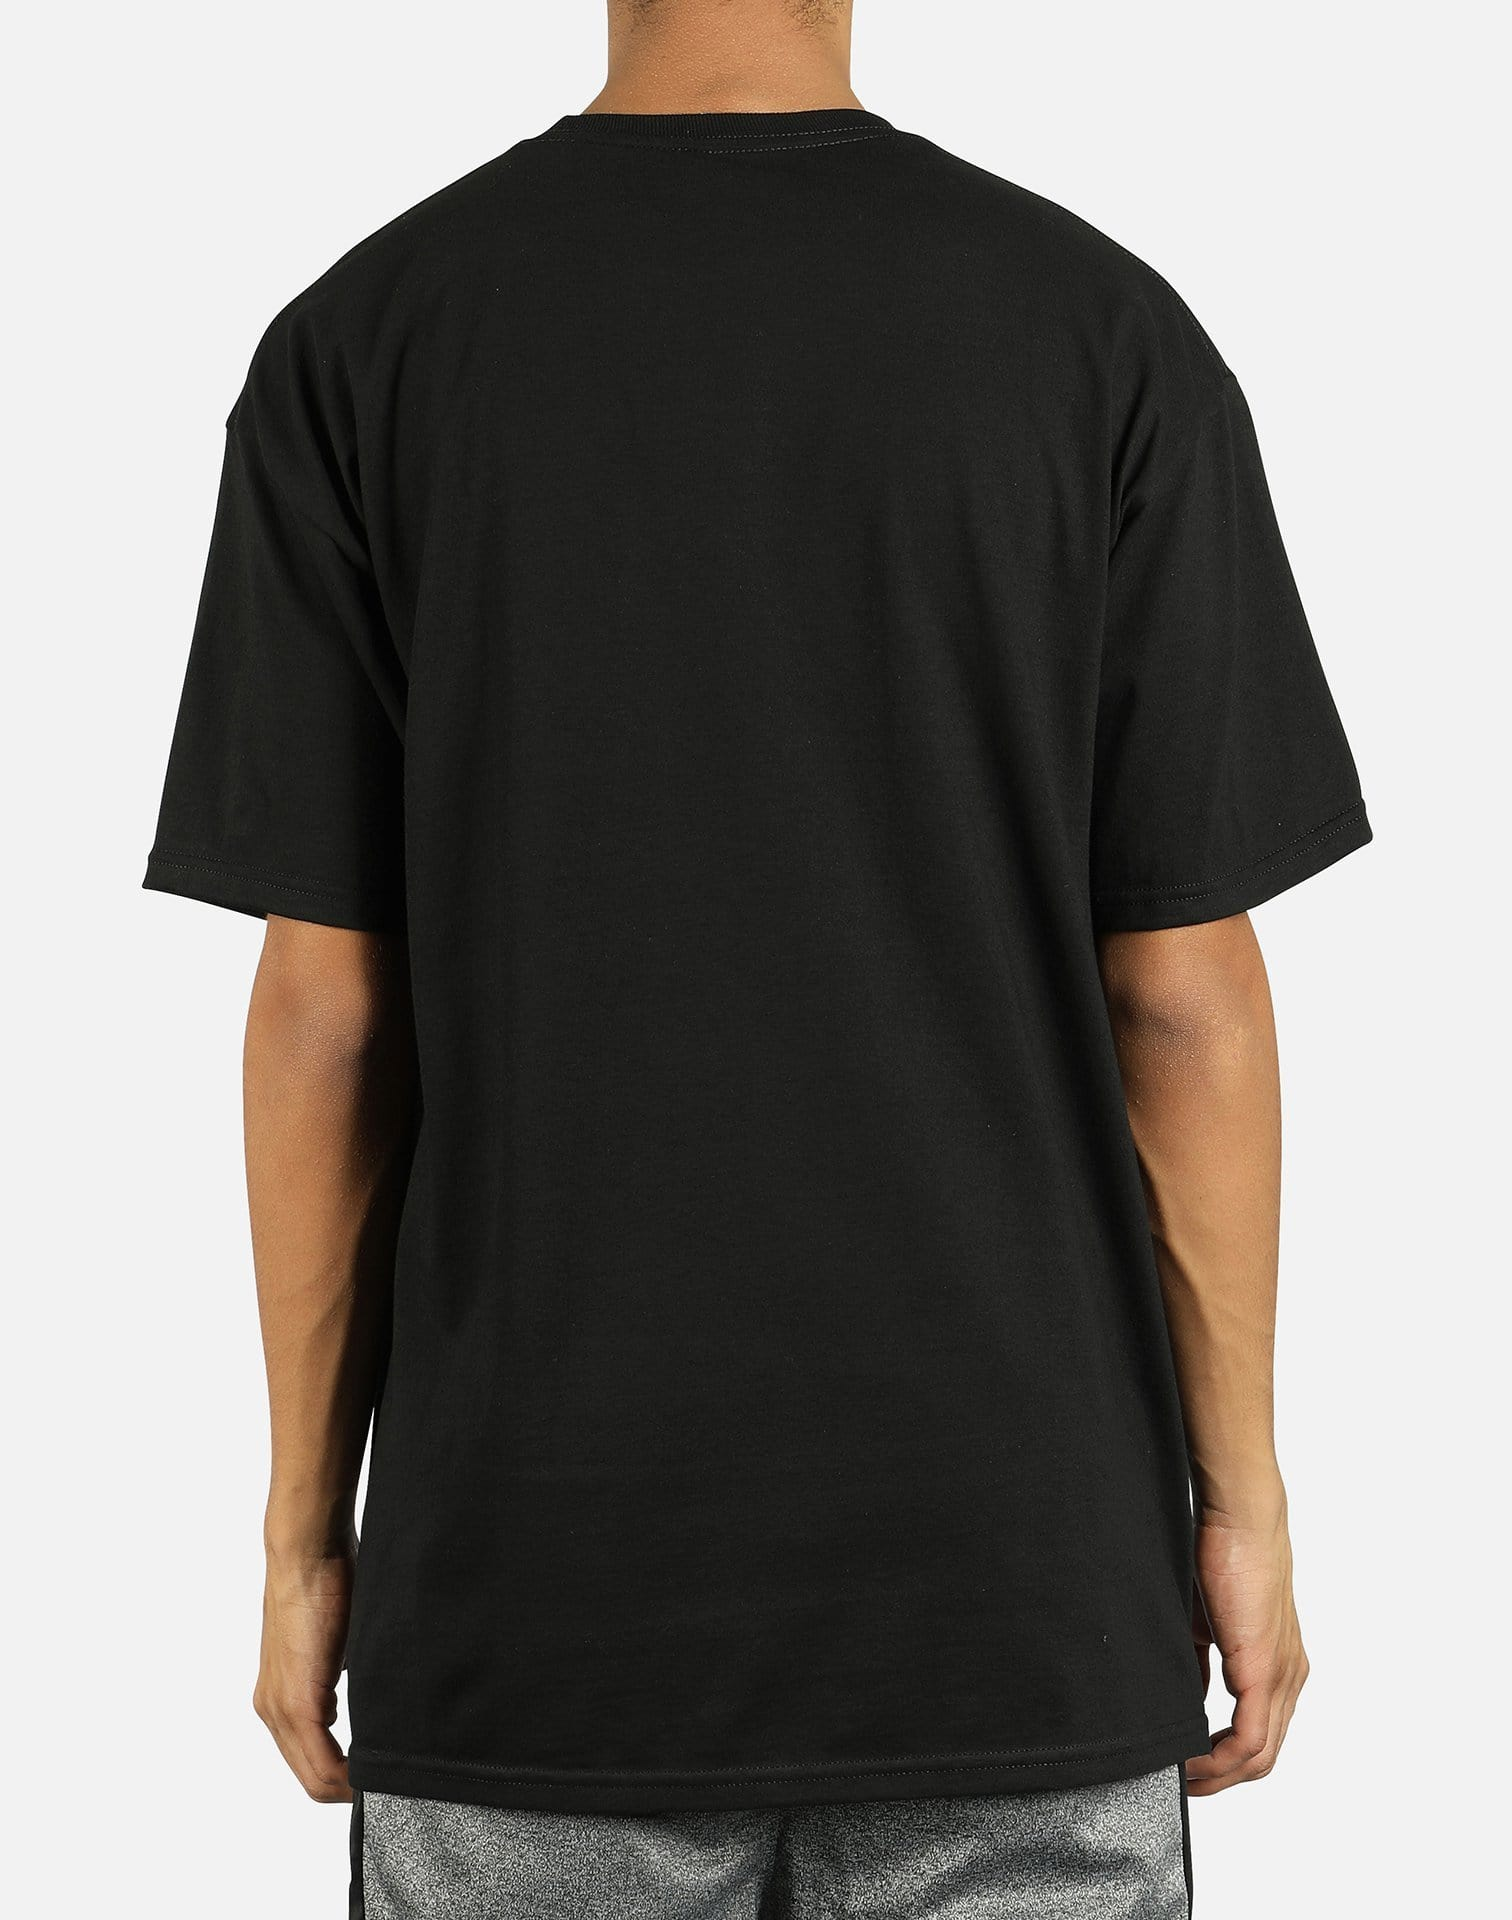 Dope Men's Absolutely Dope Tee